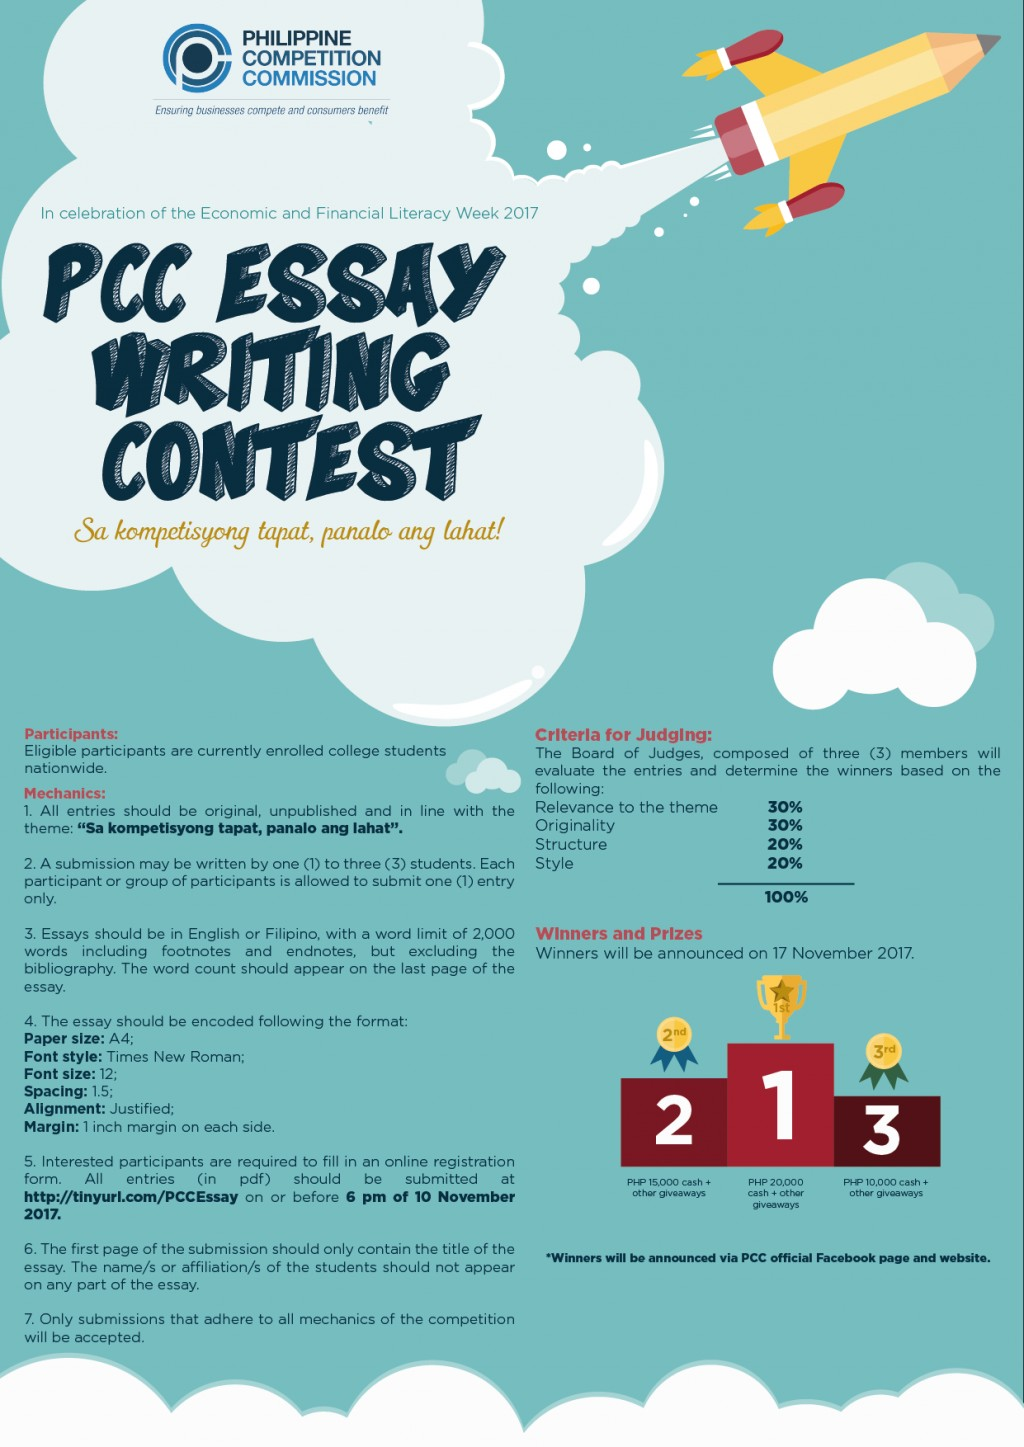 004 Essay Example Writing Contest Poster Final Incredible Competition For College Students By Essayhub Sample Mechanics Large